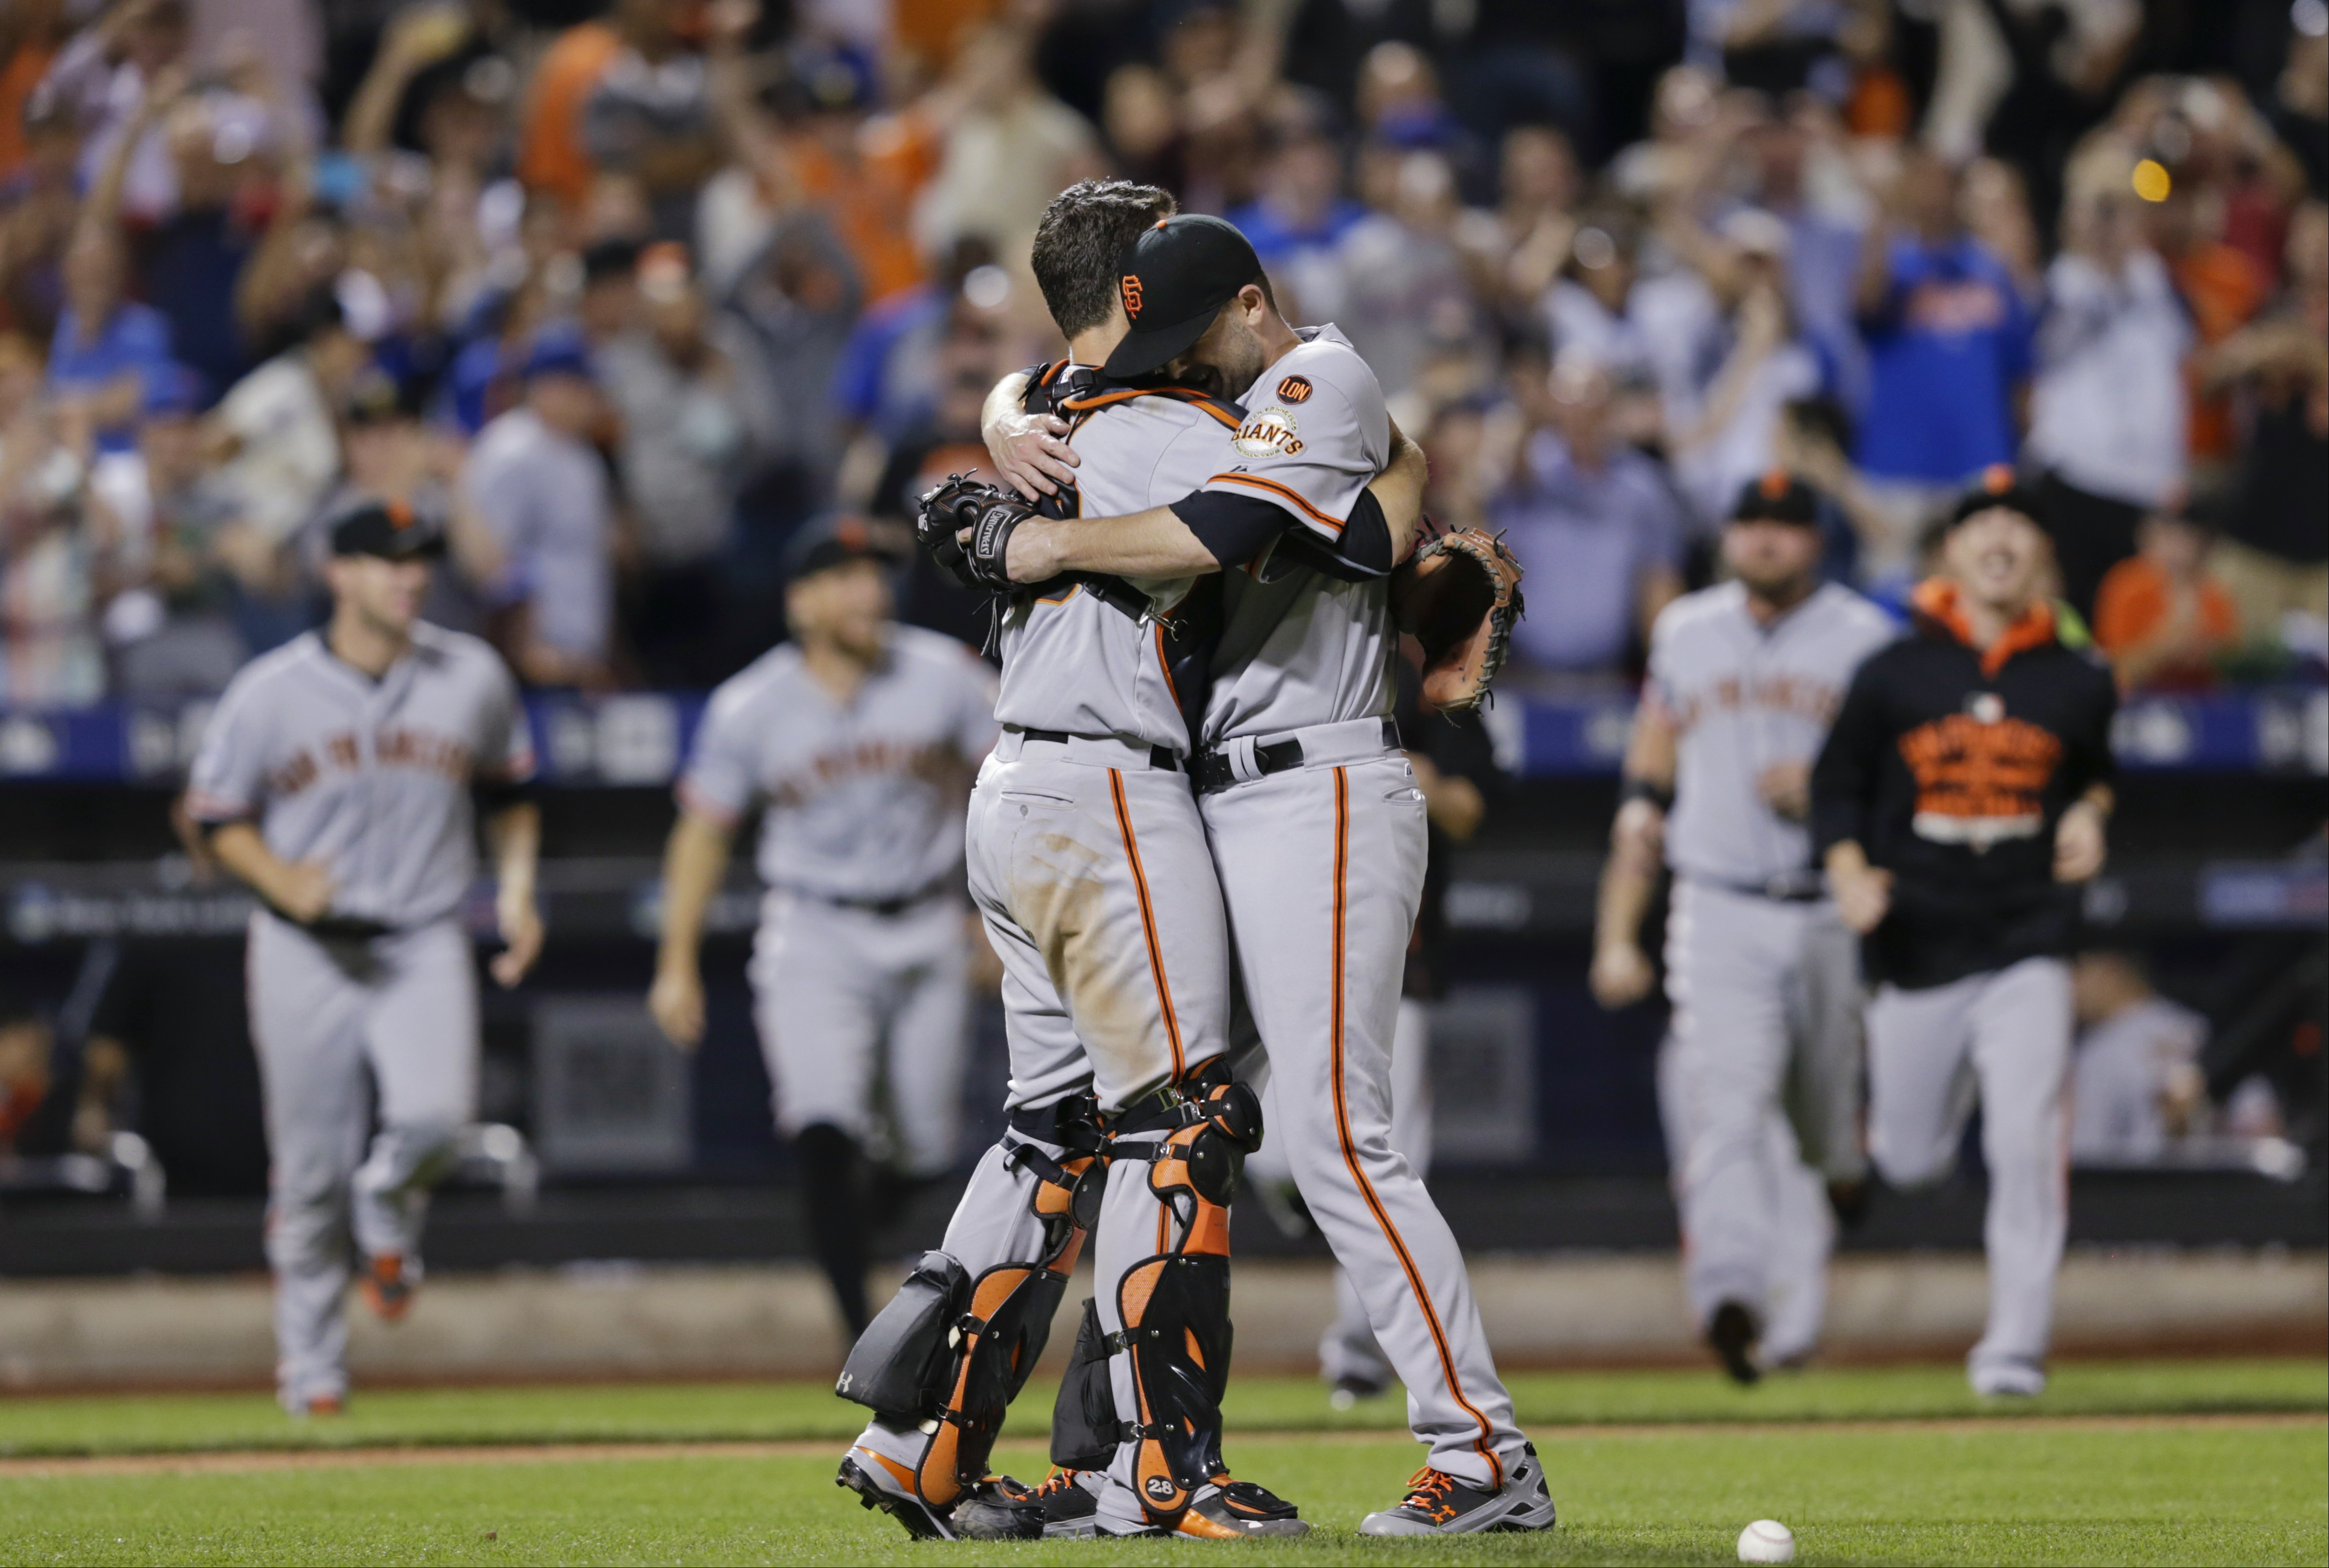 San Francisco Giants starting pitcher Chris Heston hugs catcher Buster Posey, left, after Heston's no-hitter in a baseball game against the New York Mets on Tuesday, June 9, 2015, in New York. The Giants won 5-0. (AP Photo/Frank Franklin II)